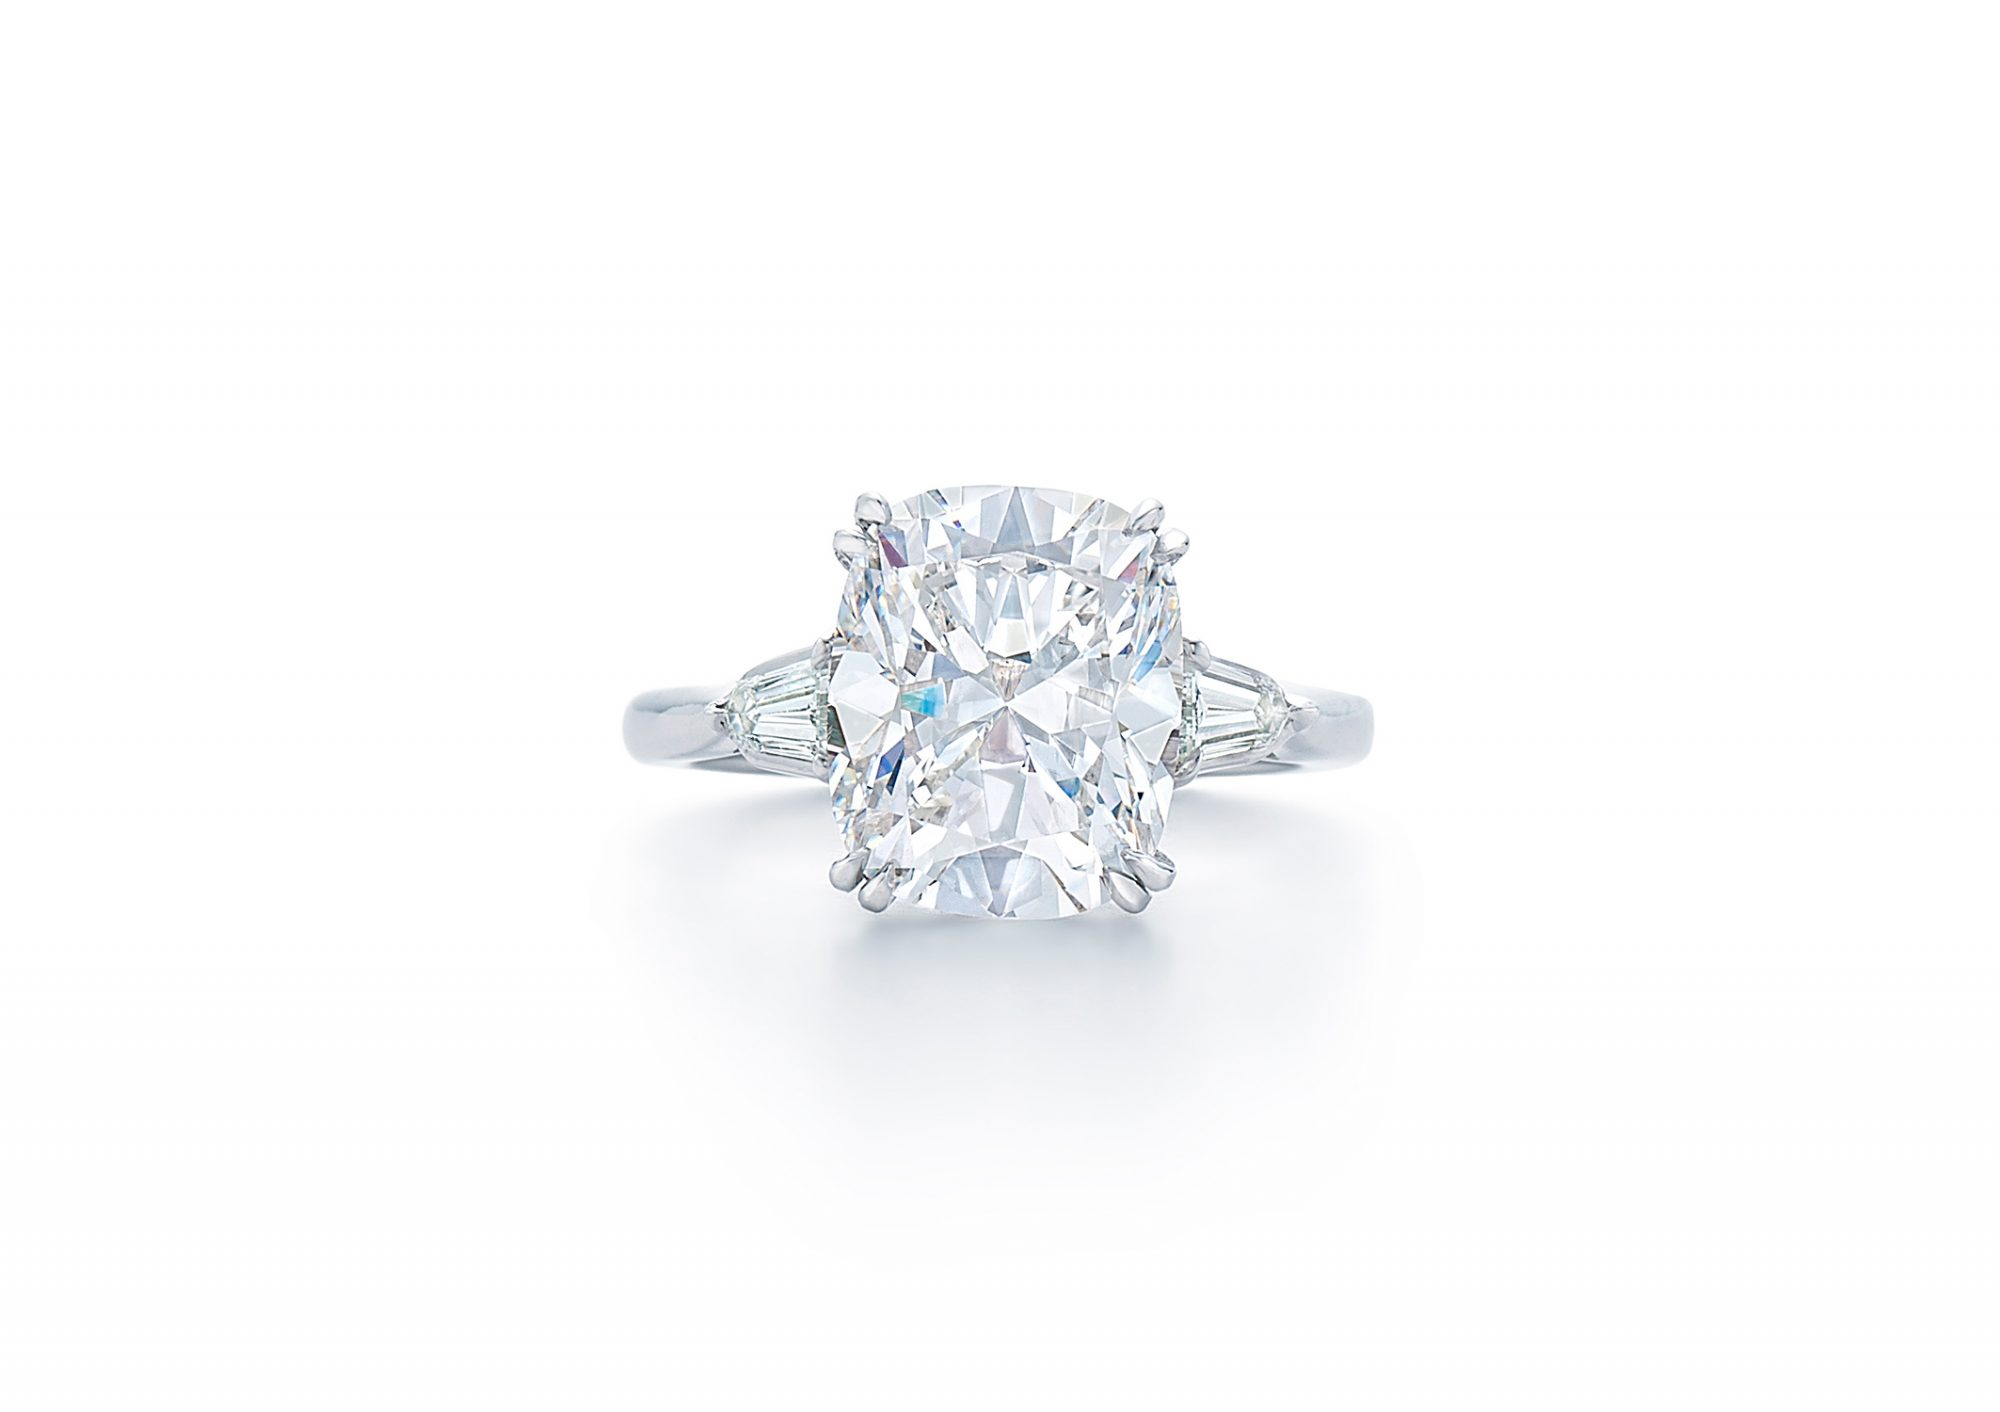 kwiat cushion cut diamond baguette diamonds on side engagement ring